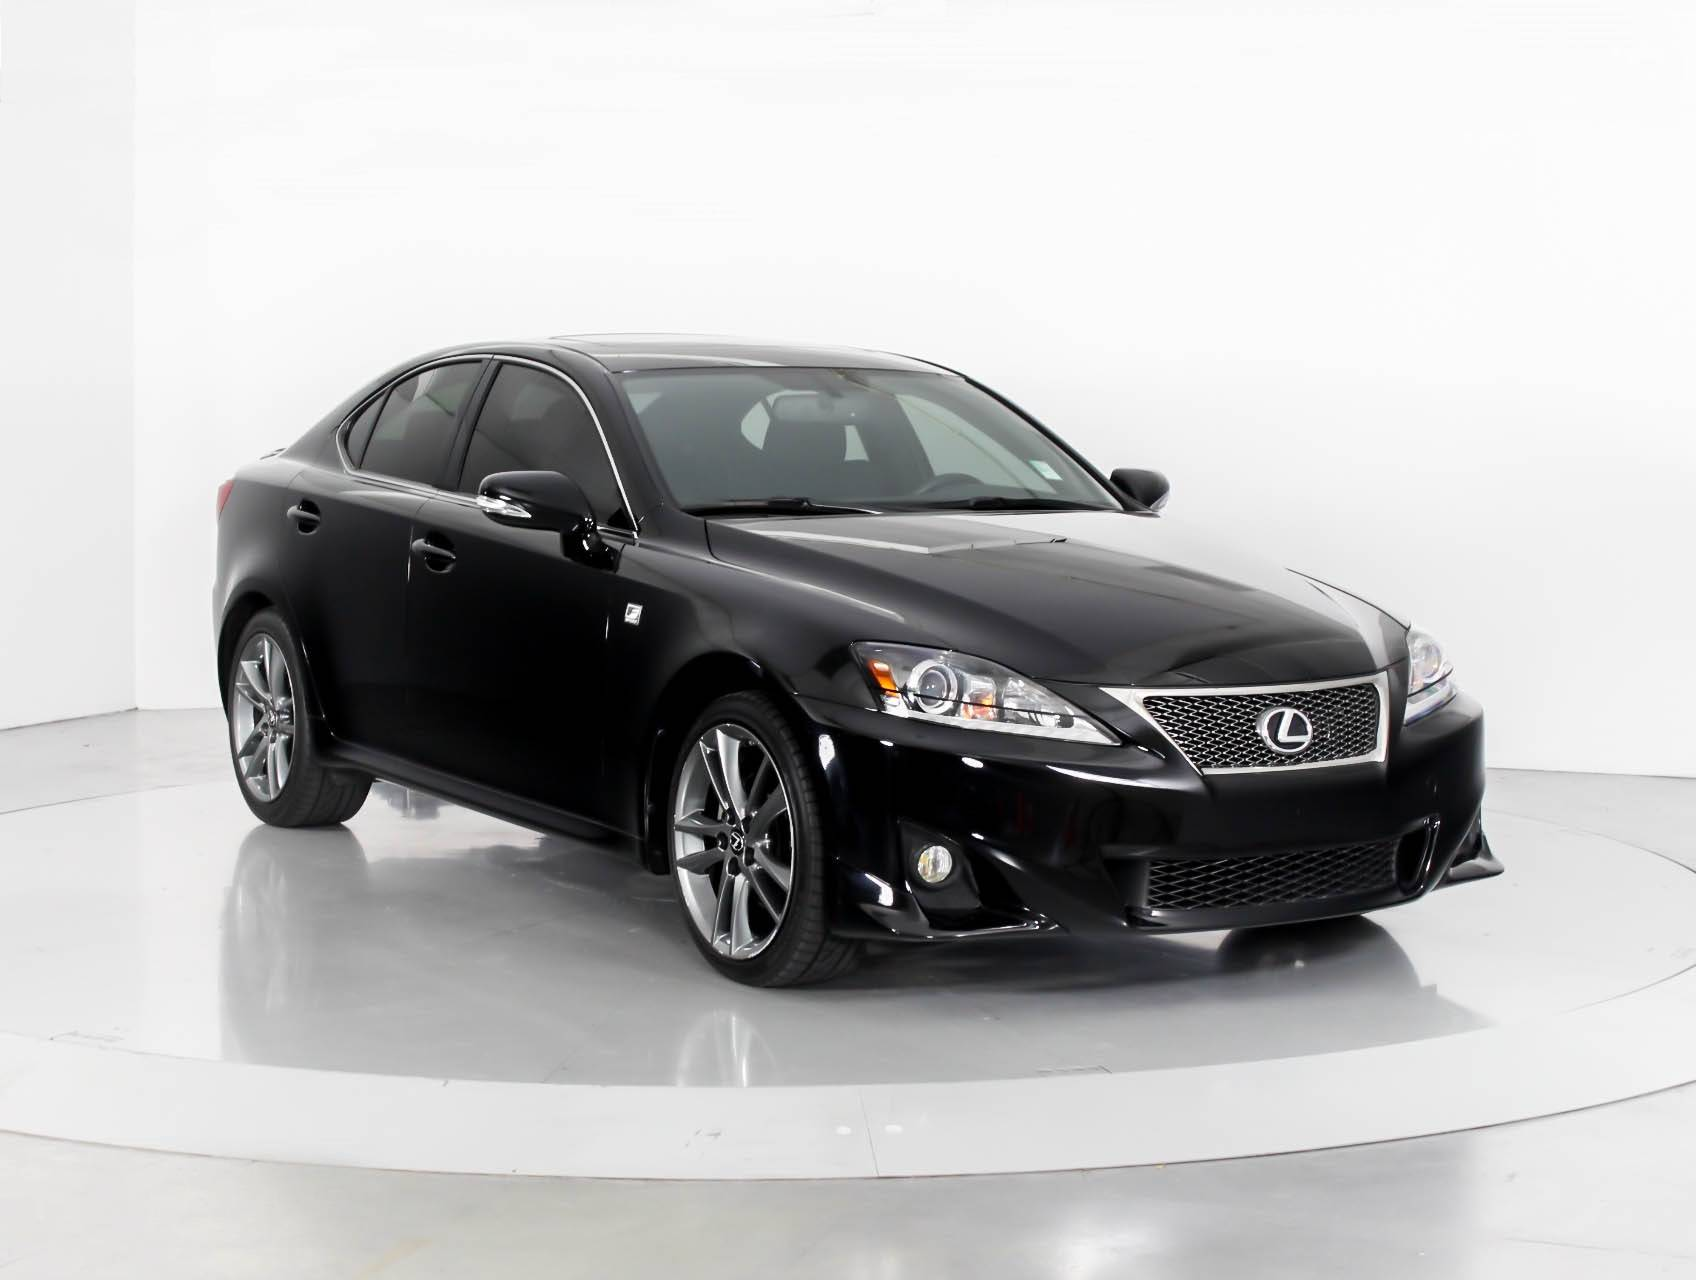 Used 2012 LEXUS IS 250 F SPORT Sedan for sale in WEST PALM FL